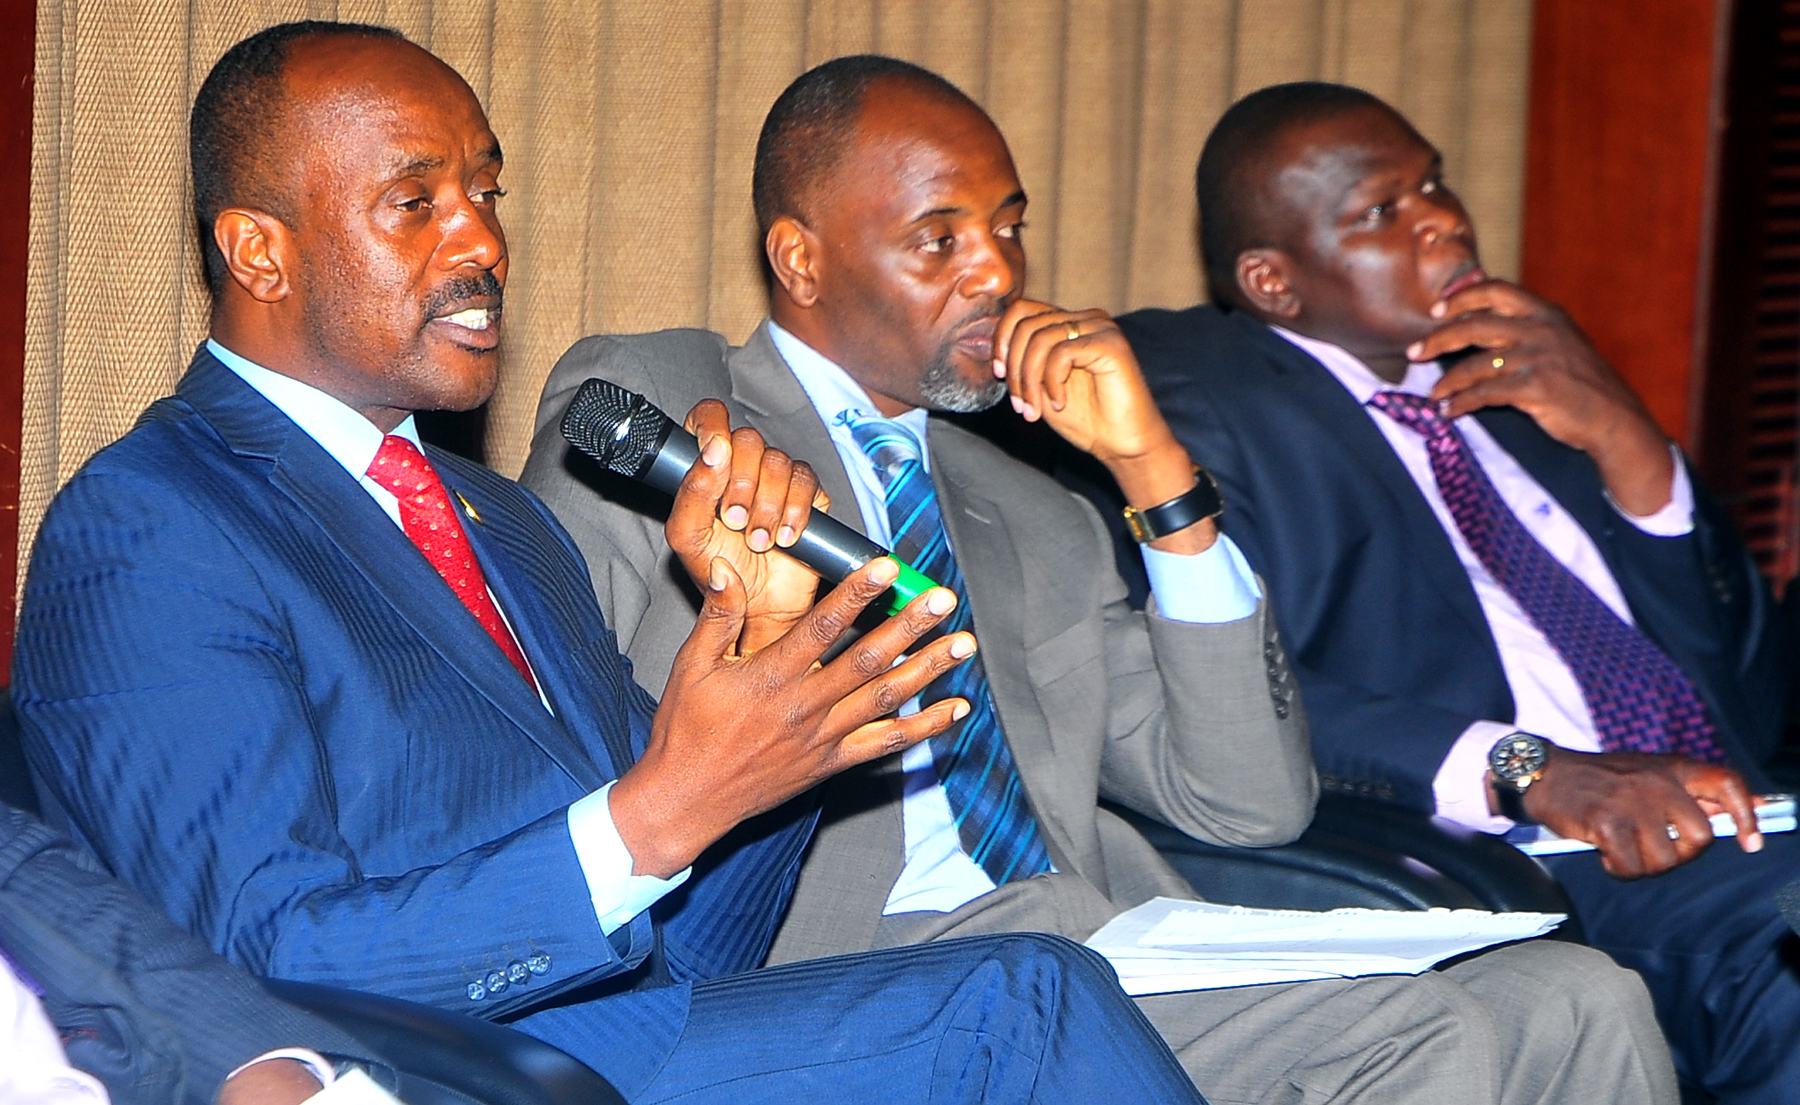 Minister for Economic Monitoring Mr. Henry Bayenzaki (L), National Planning Authority executive director and Member of Parliament for Bulisa Mr. Joseph Muvawala (R) and Stephen Mukitale Birahwa at launch of World Bank fifth Uganda economic update on Tuesday March 3, 2015 at Kampala Serena Hotel.  (PHOTO: STEPHEN WANDERA)